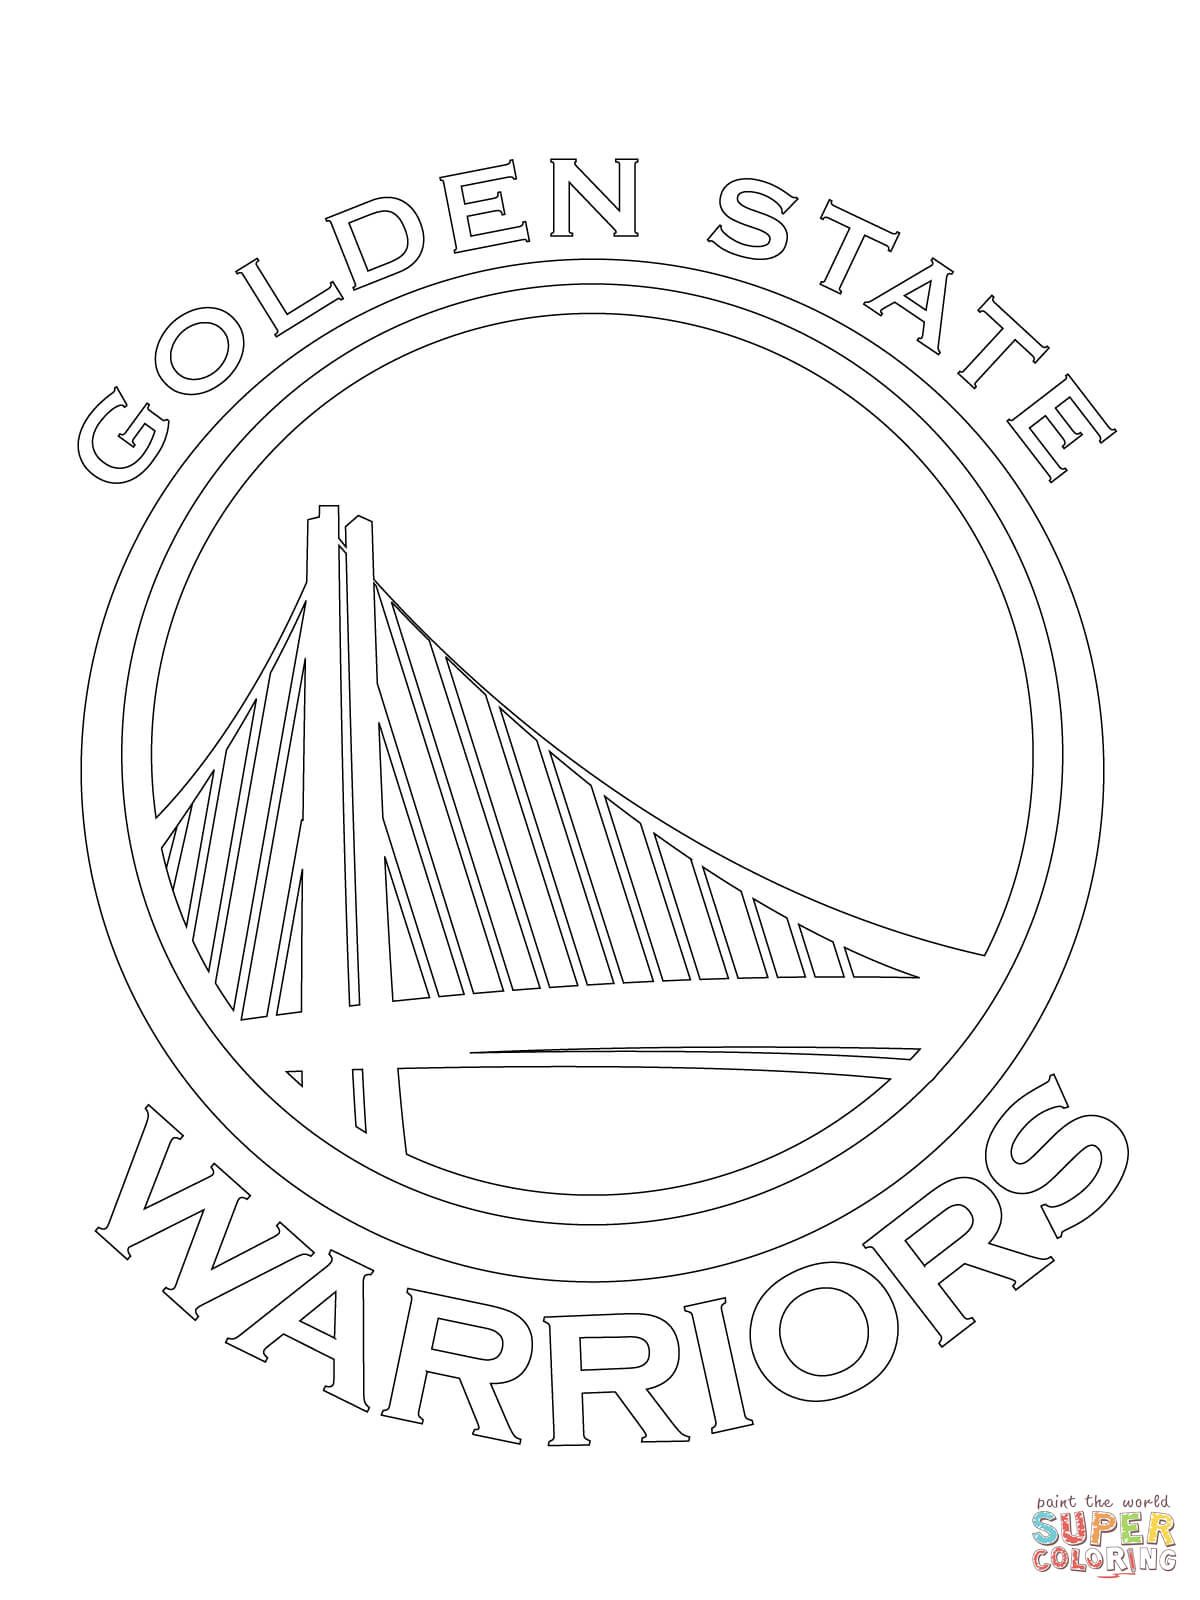 state warriors logo coloring page free printable coloring pages